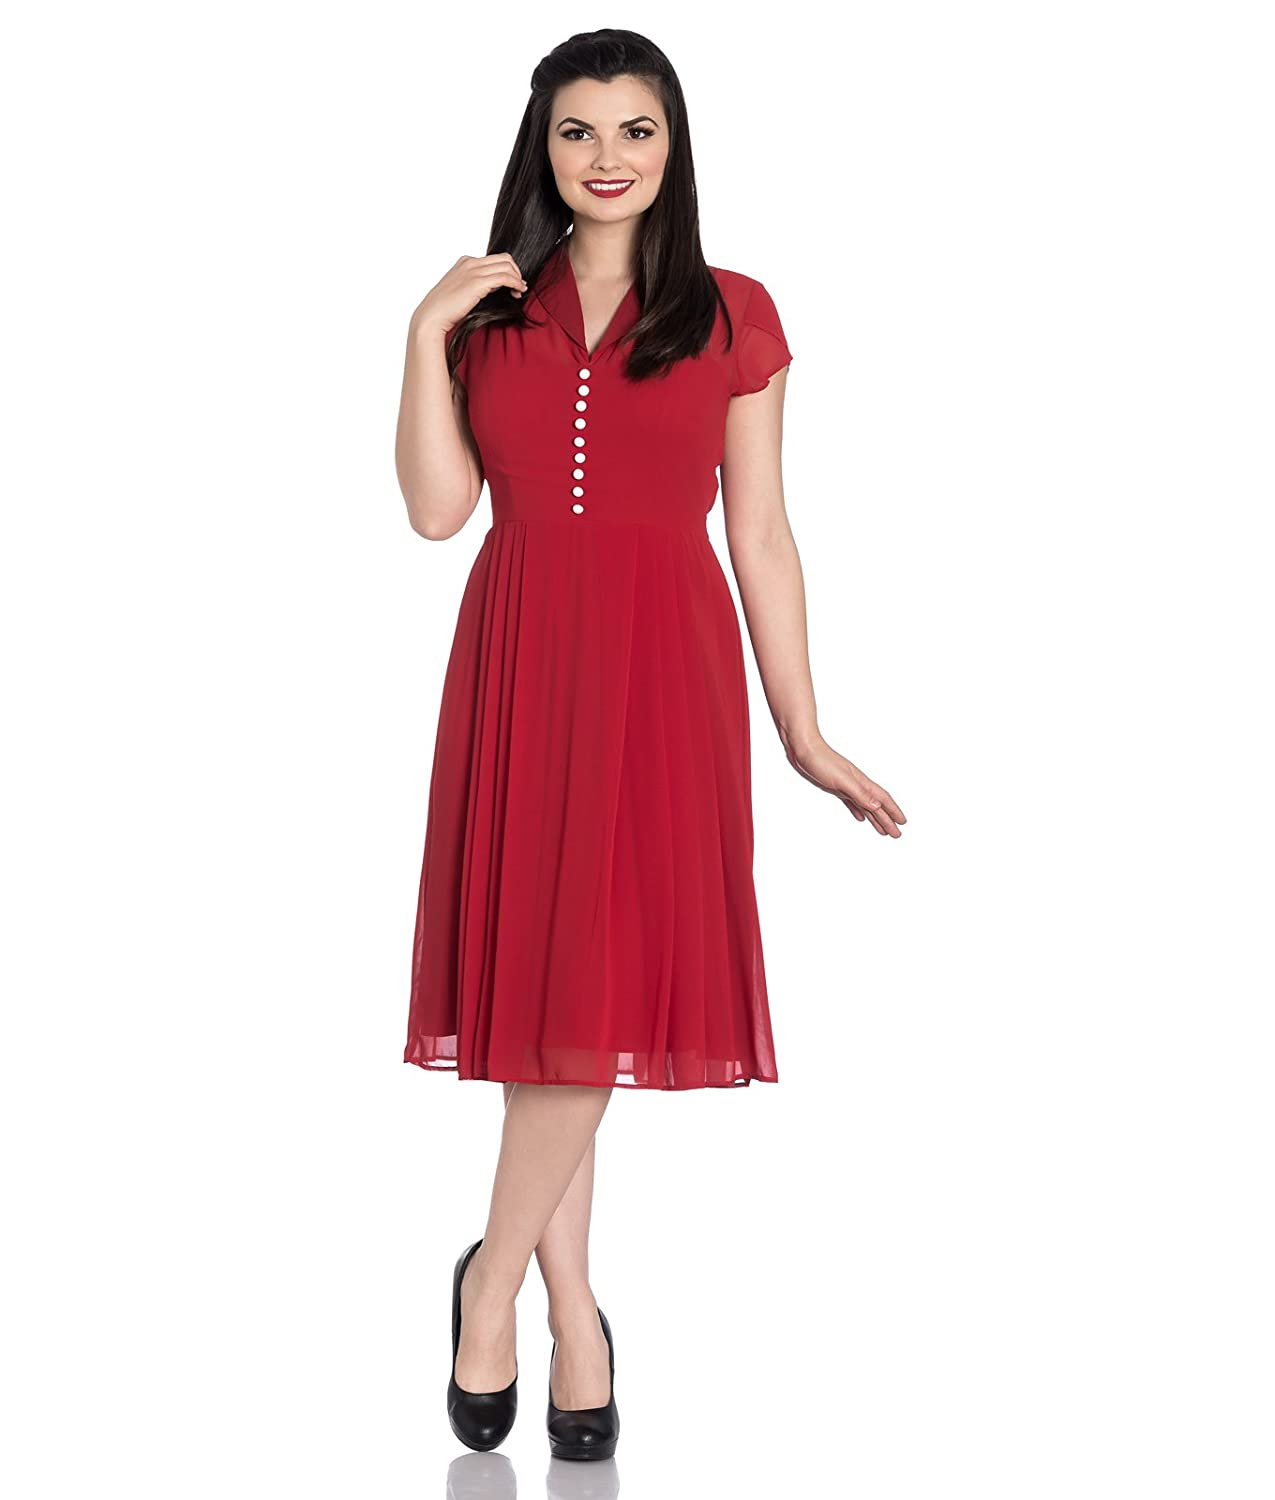 7d980002831d Hell Bunny Paige 40s Vintage Style Chiffon Tea Red Dress: Amazon.co.uk:  Clothing